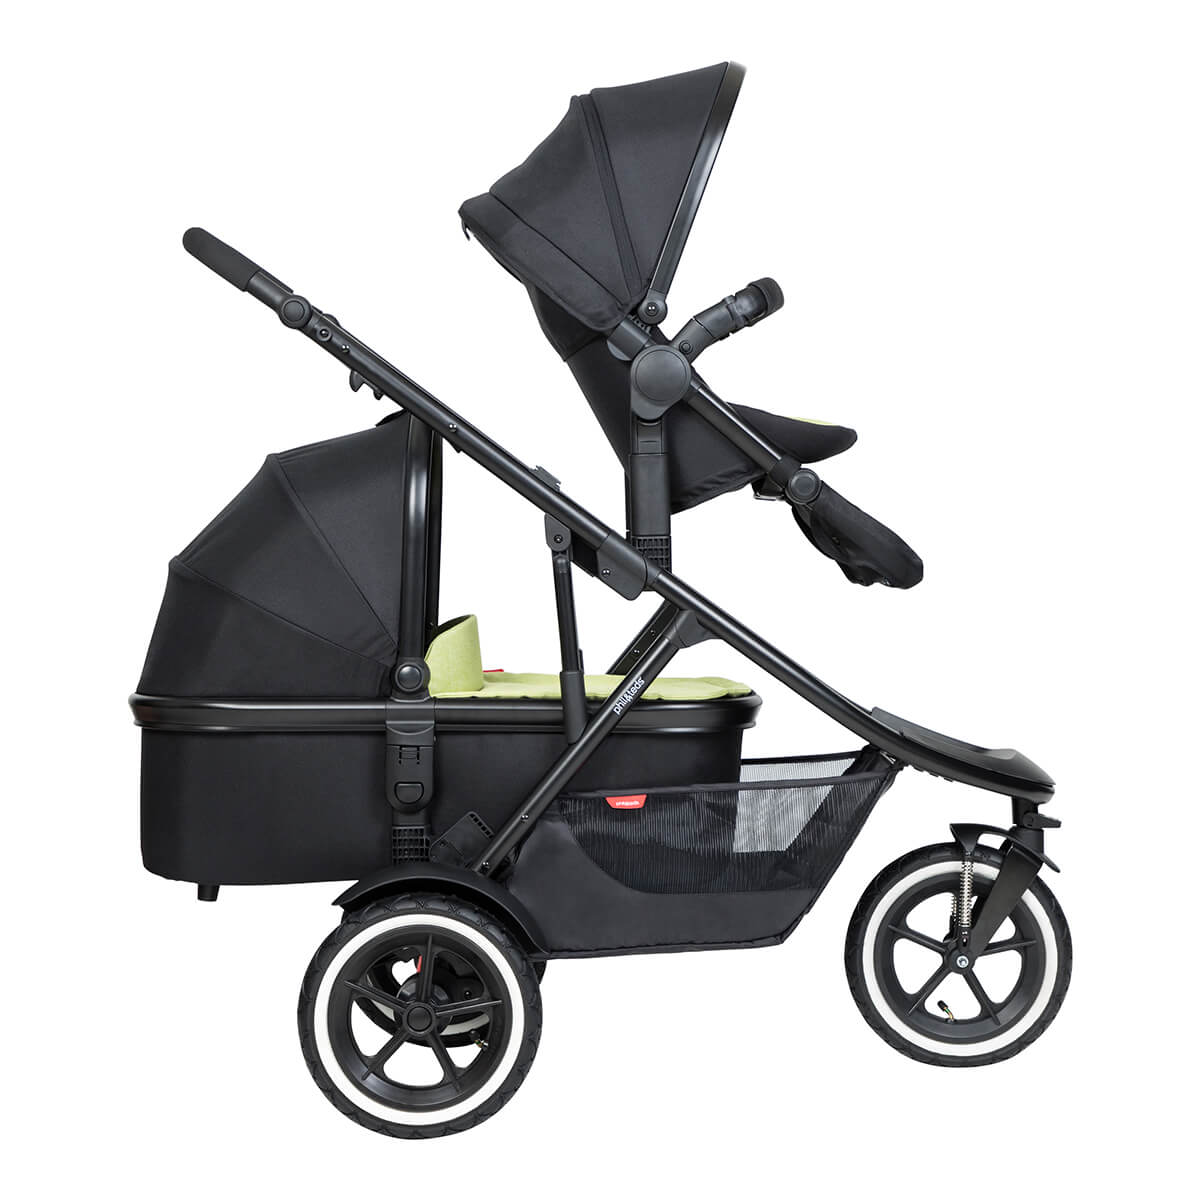 https://cdn.accentuate.io/4509527113816/19272668282968/philteds-sport-buggy-with-double-kit-extended-clip-and-snug-carrycot-side-view-v1626484326631.jpg?1200x1200